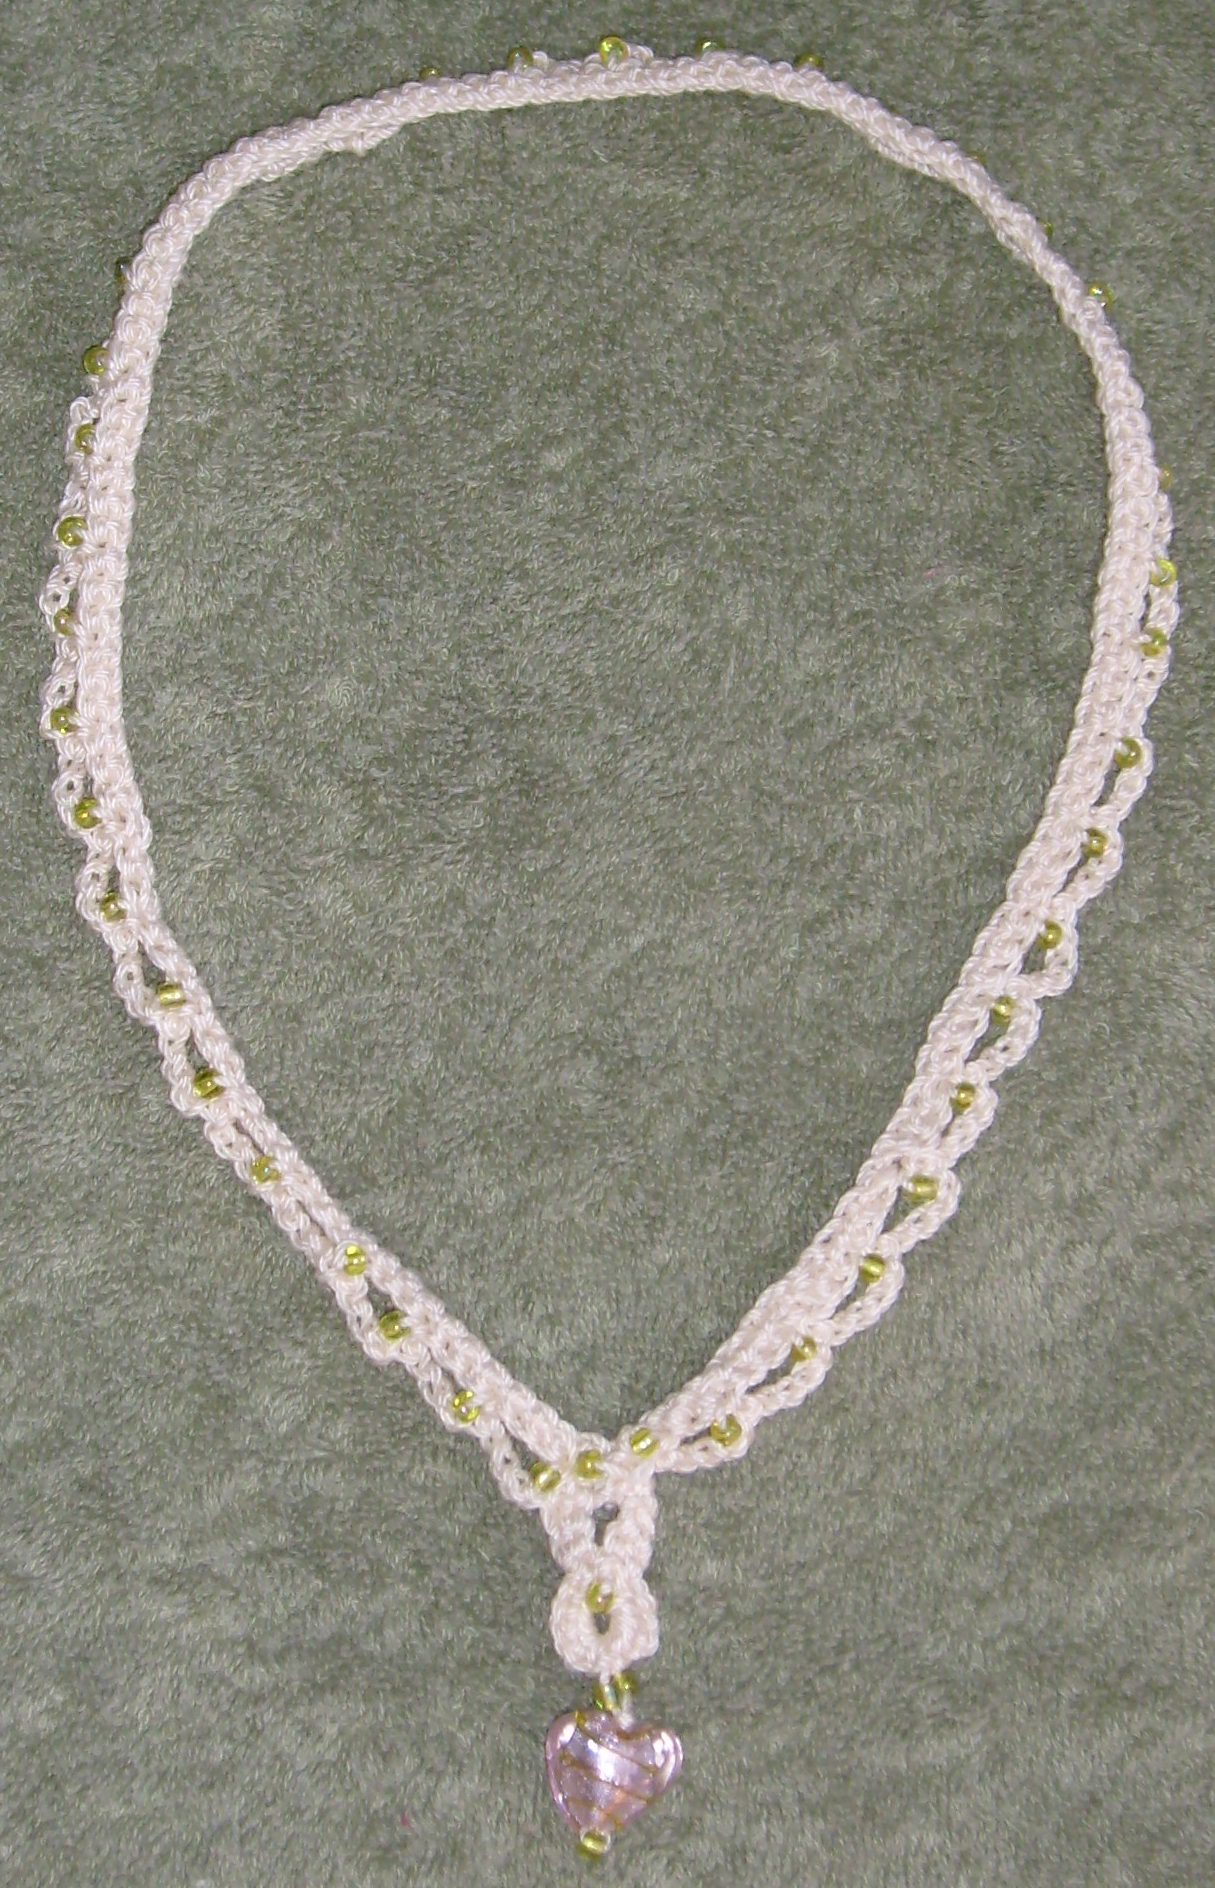 File:Crochet glass heart necklace.jpg - Wikimedia Commons